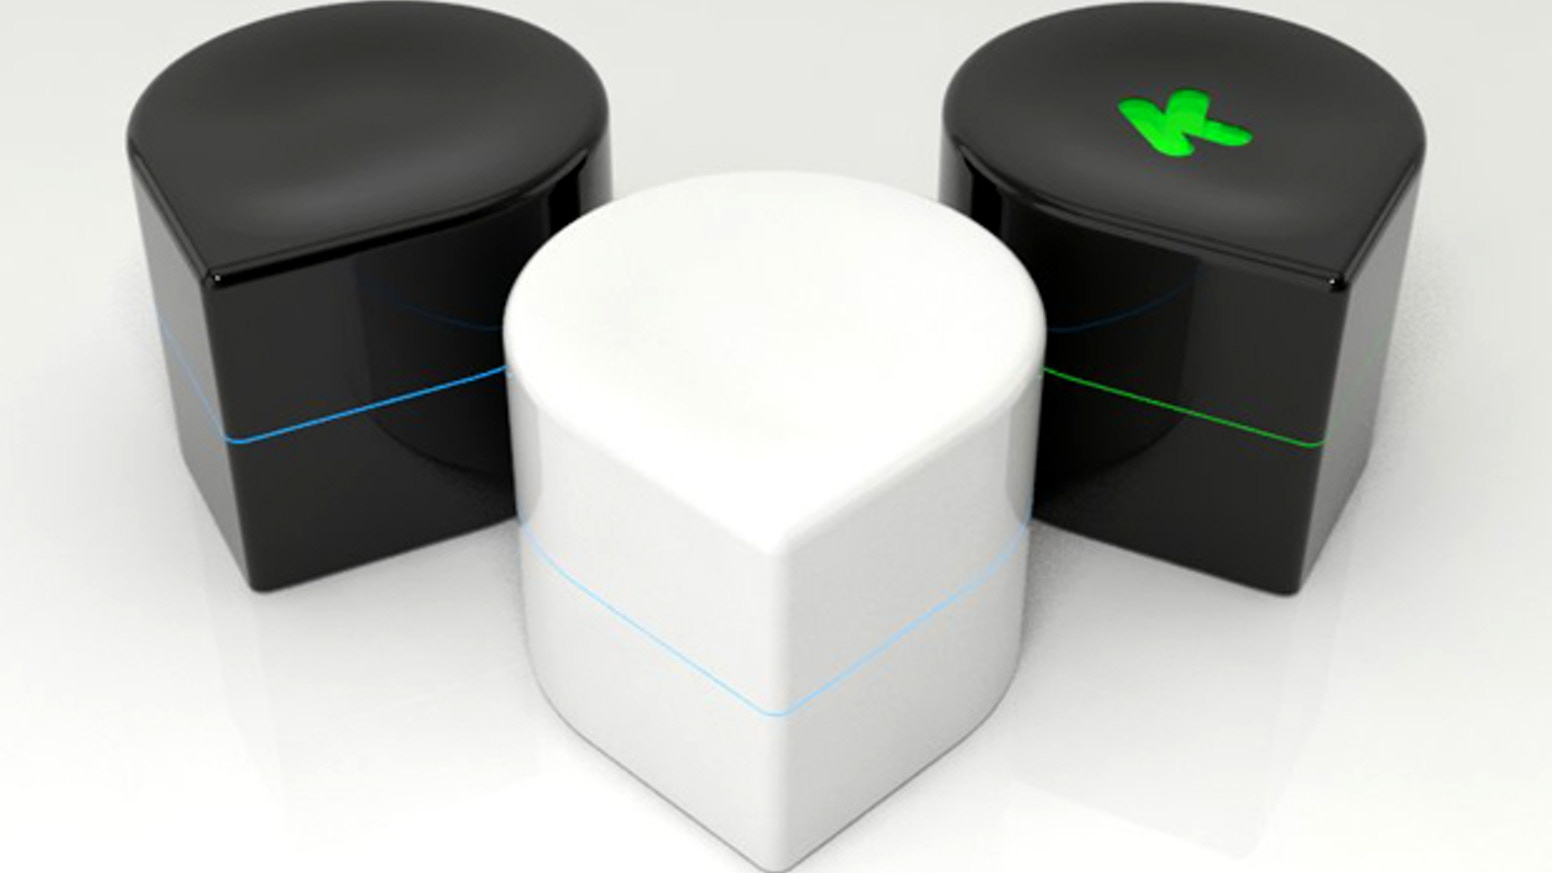 The Mini Mobile Robotic Printer By Zuta Labs Ltd Kickstarter American Standard Concept Square Tissue Holder